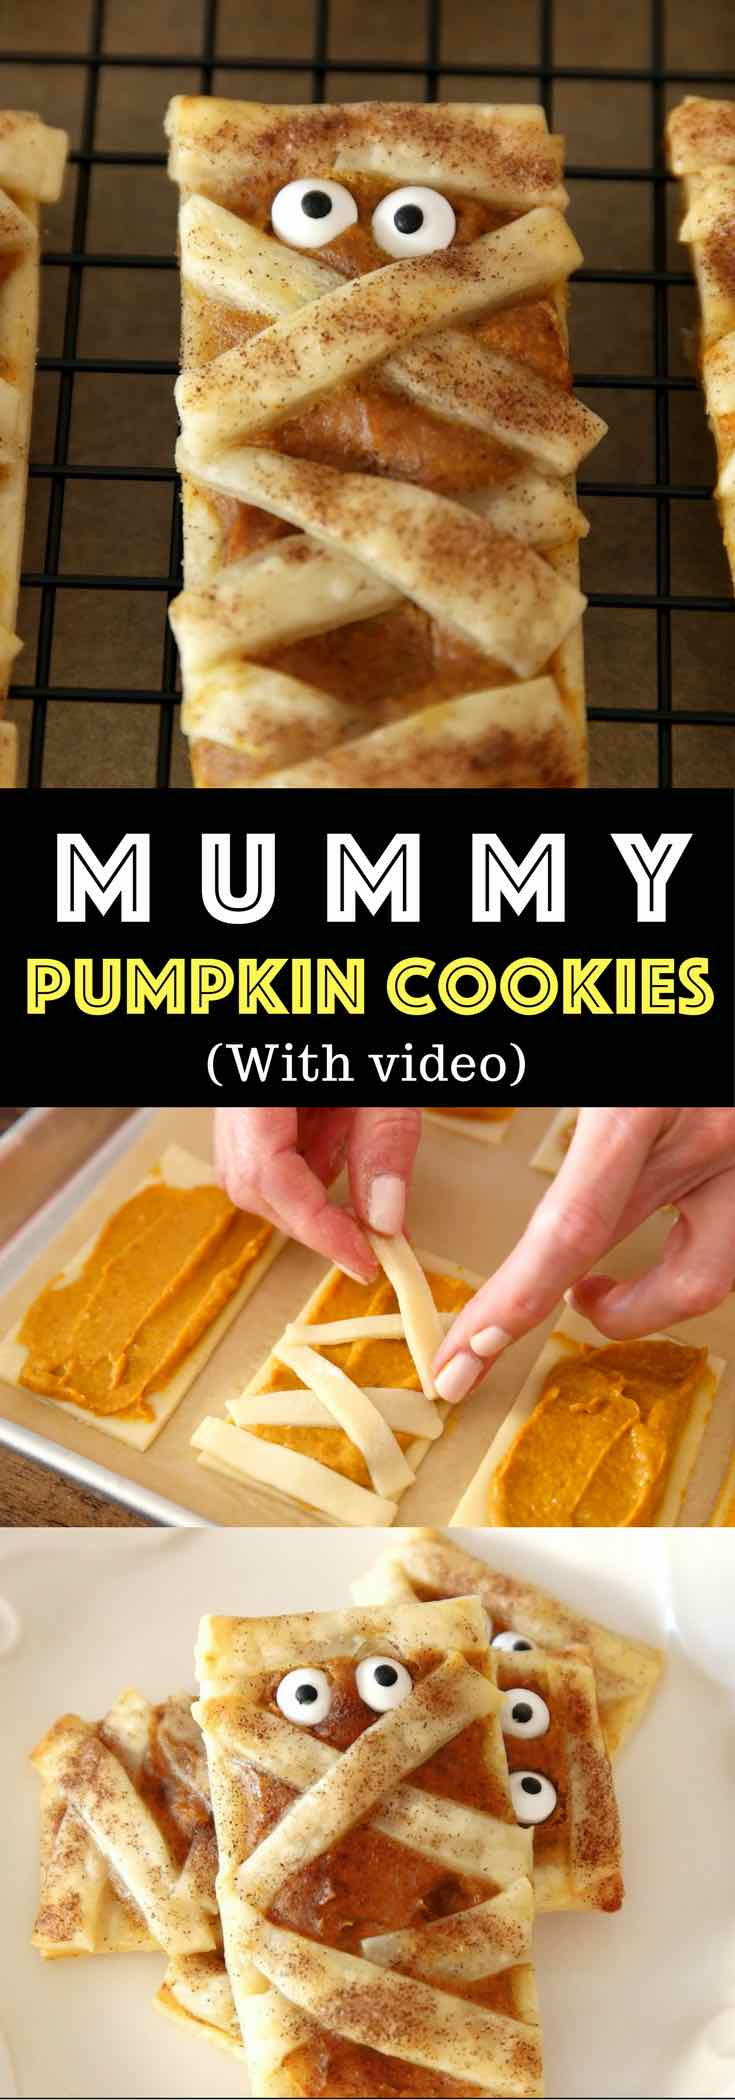 These delicious and soft Mummy Pumpkin Cookies make for a perfect party treat. They melt in your mouth. All you need is only a few simple ingredients. Fun recipe to make with kids. Dessert, Party Food. Vegetarian. Fun and yummy Halloween recipe. Video recipe. | Tipbuzz.com